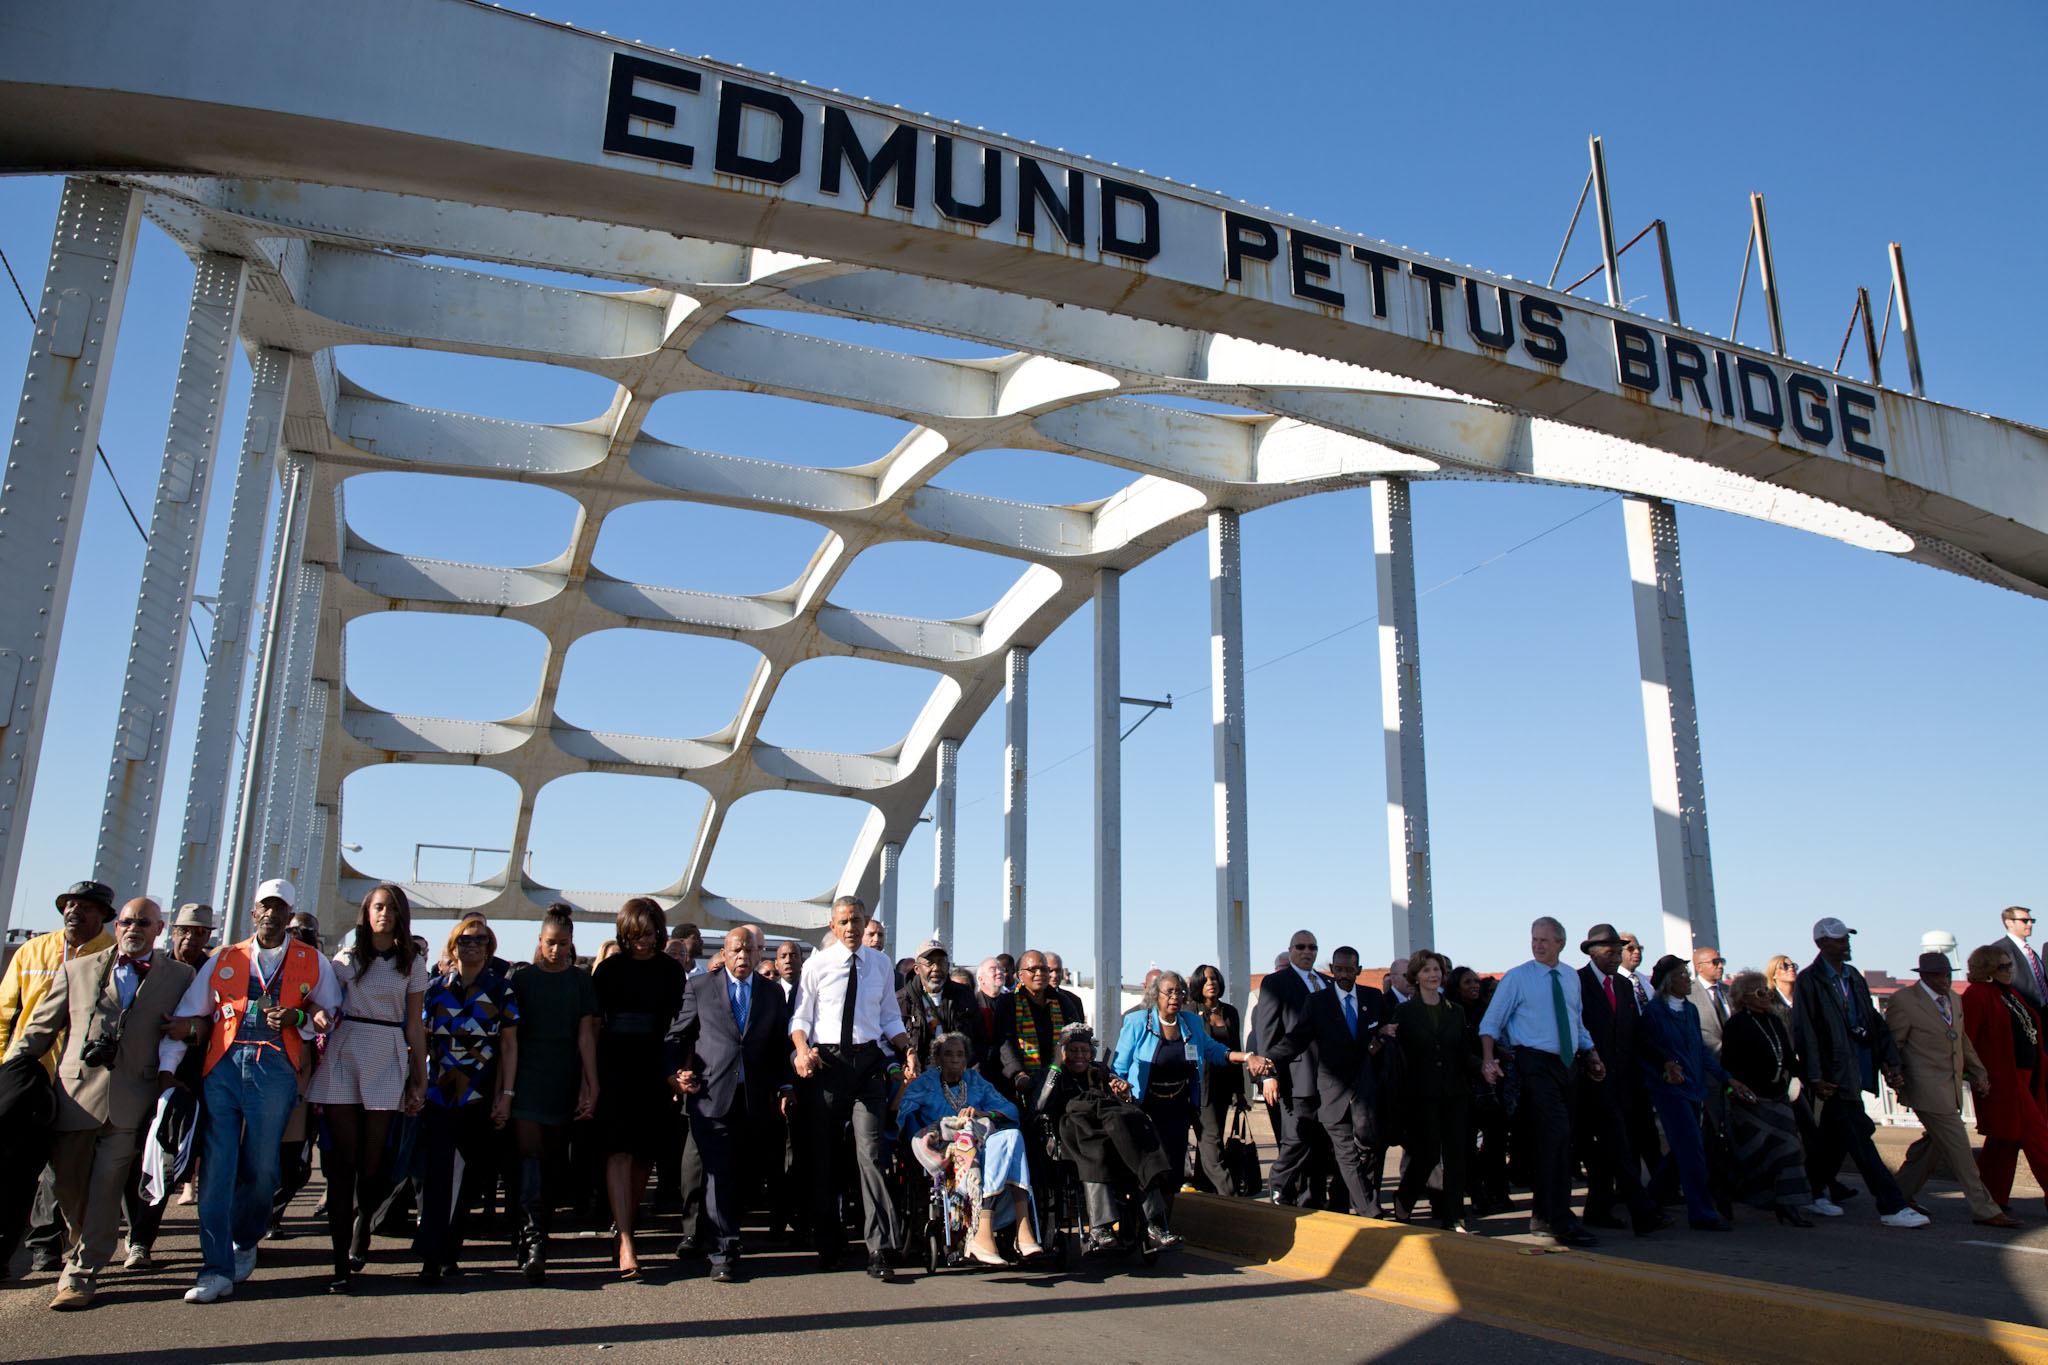 President Obama, family, and many others walking across the Edmund Pettus Bridge to commemorate the 50th Anniversary of Selma .